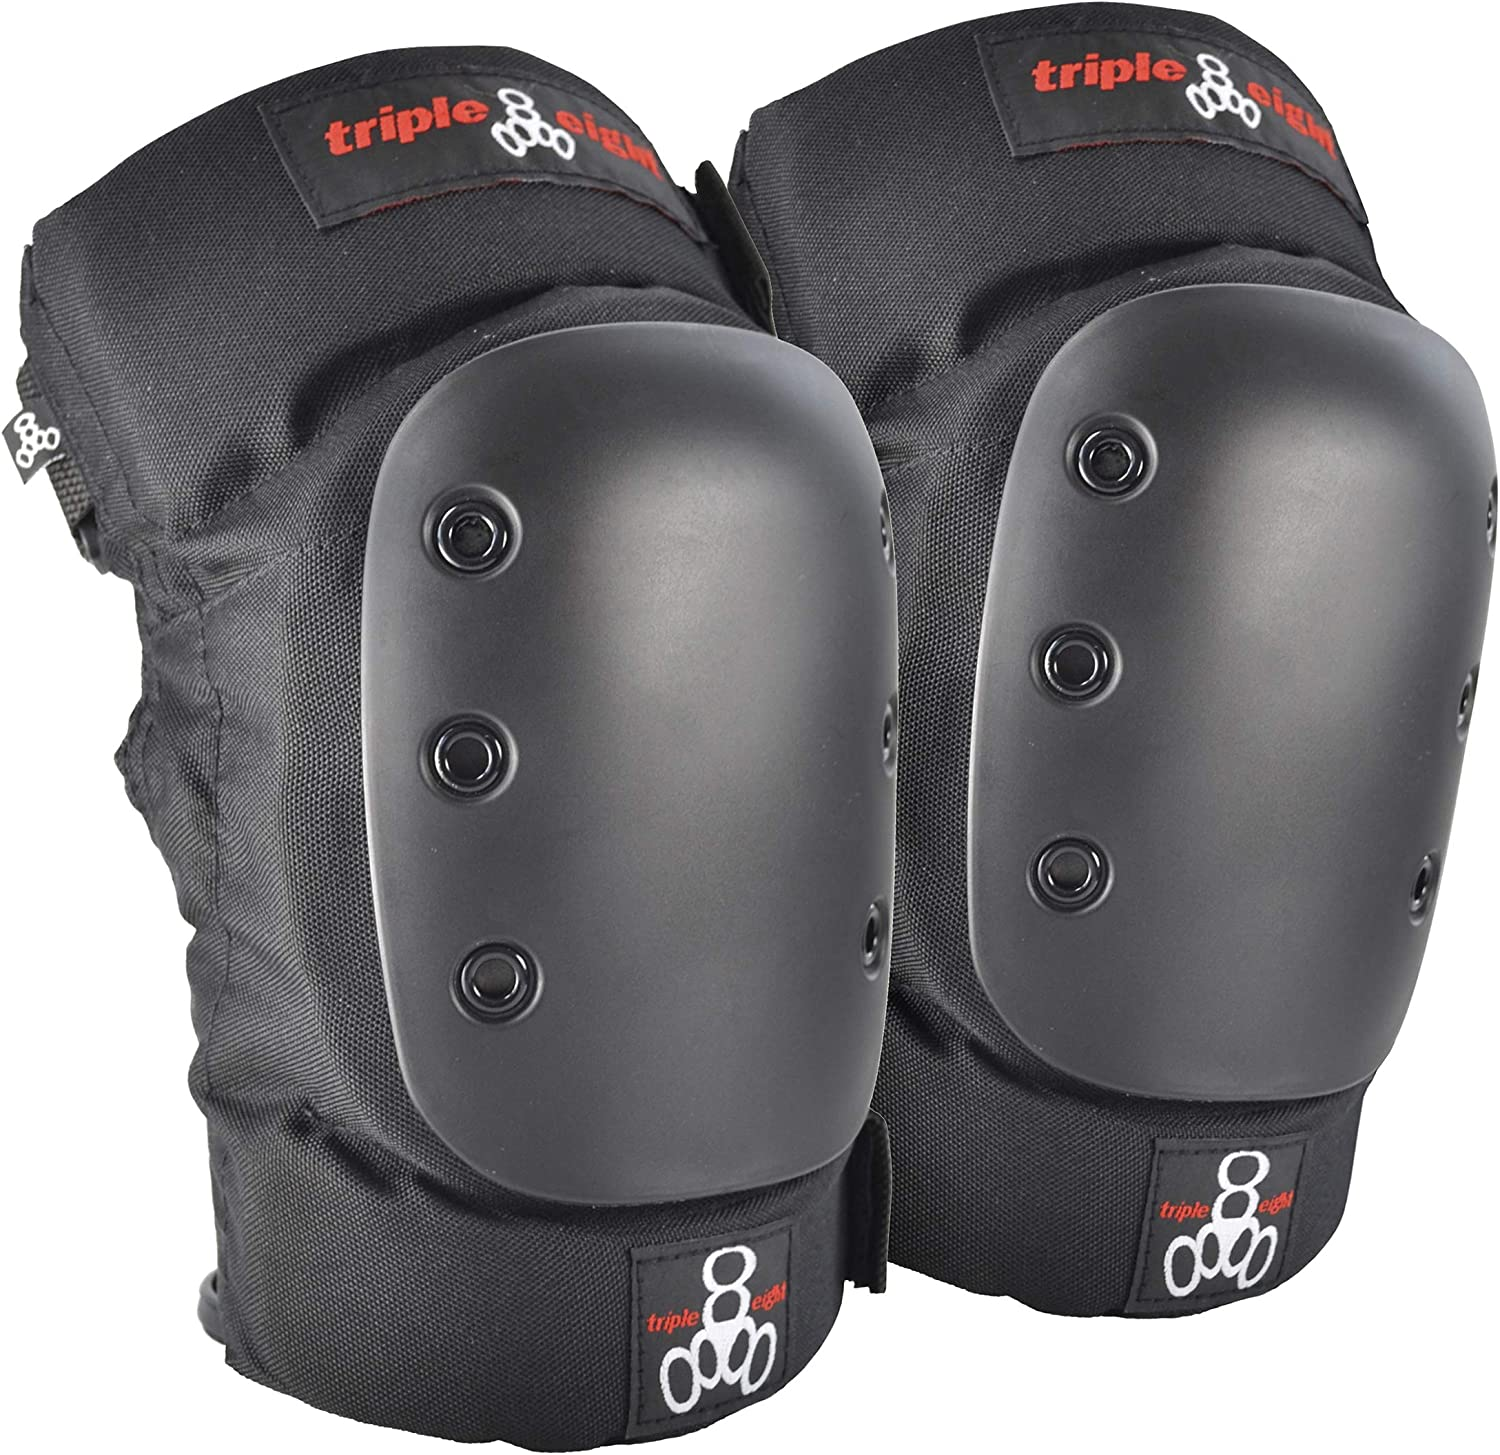 B0000ASZ9P Triple Eight KP 22 Heavy-Duty Skateboarding Knee Pads (Pair) 81tJb2BxVH8L